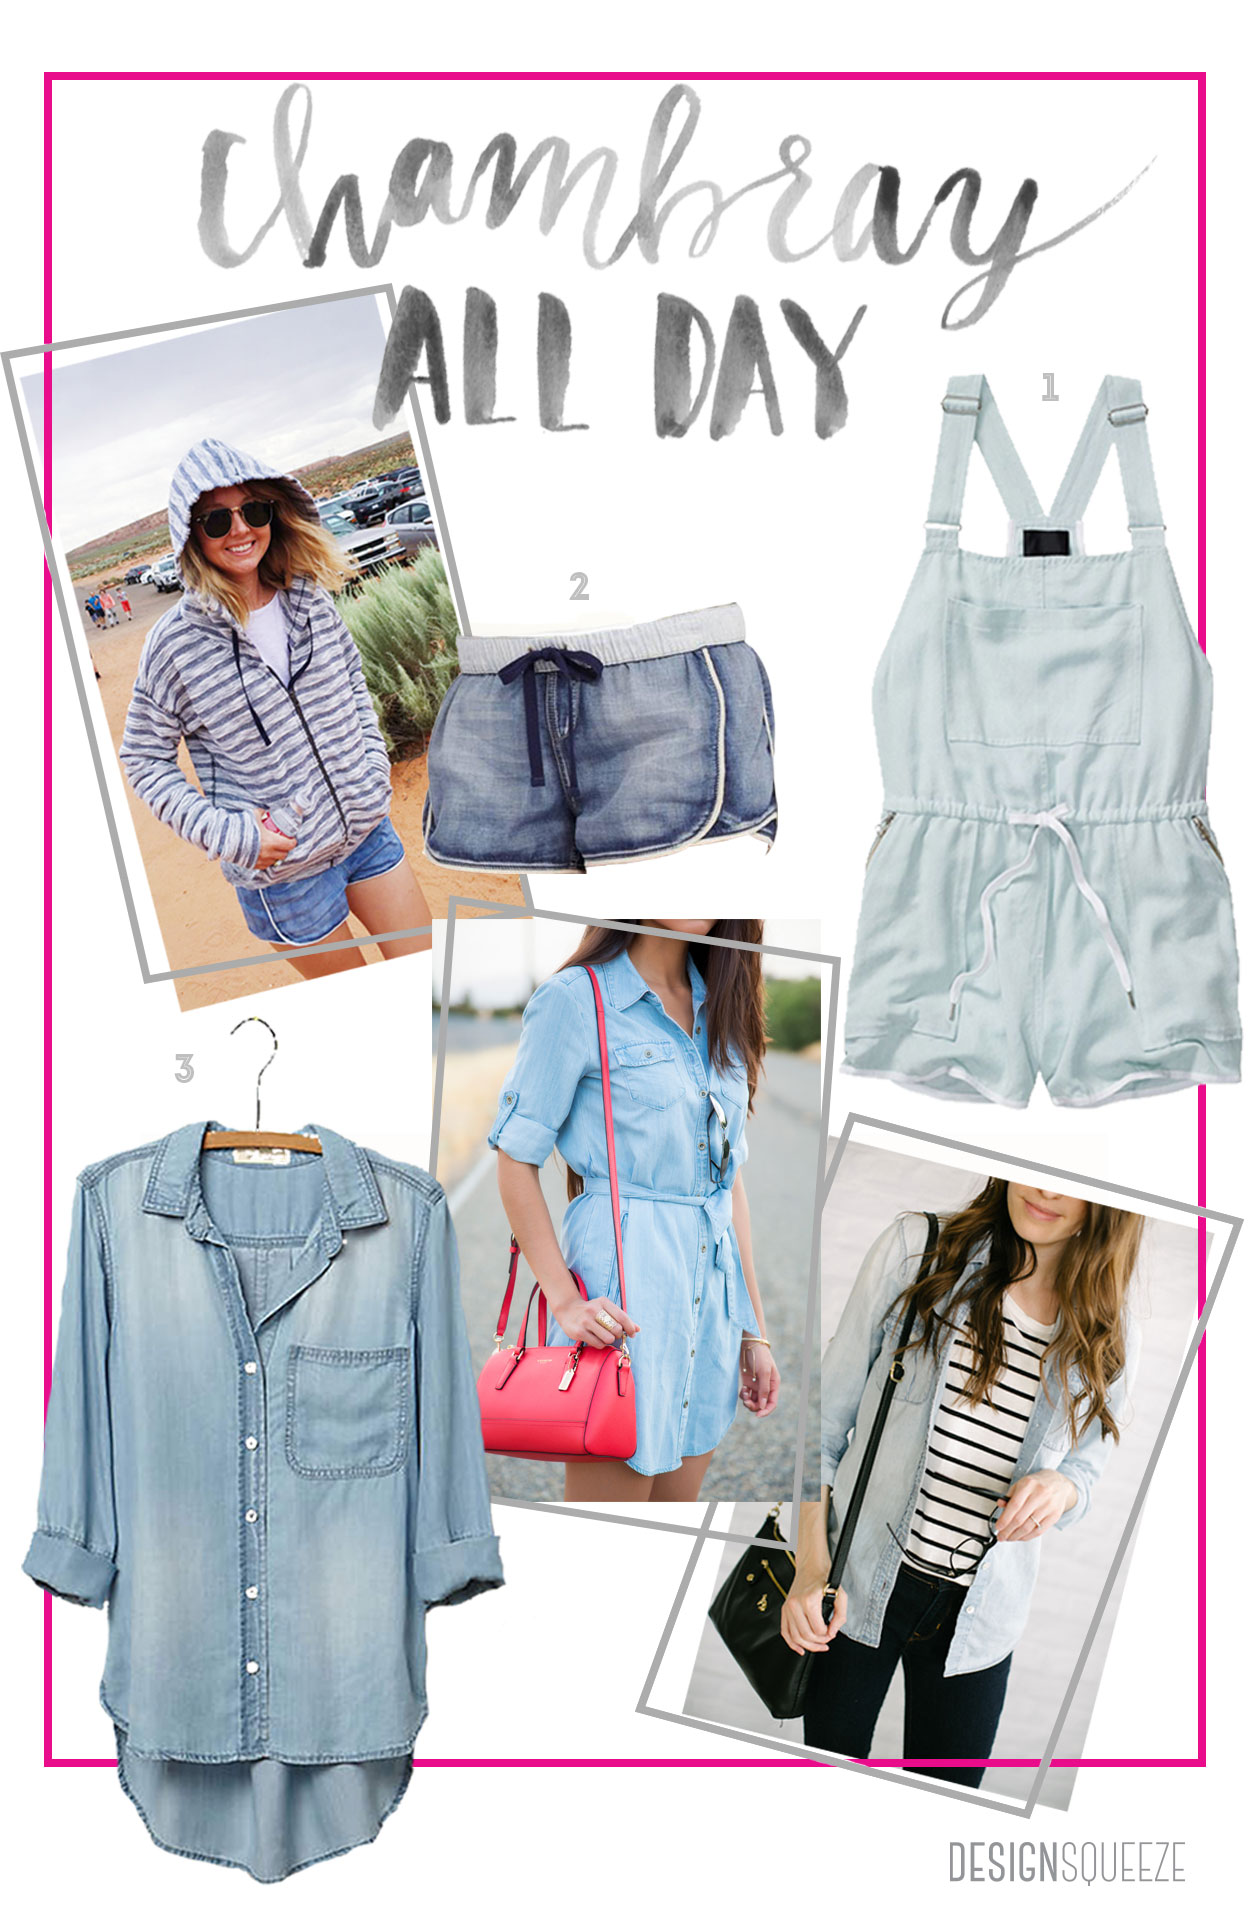 Chambray All Day: The best chambray & denim pieces to wear every season